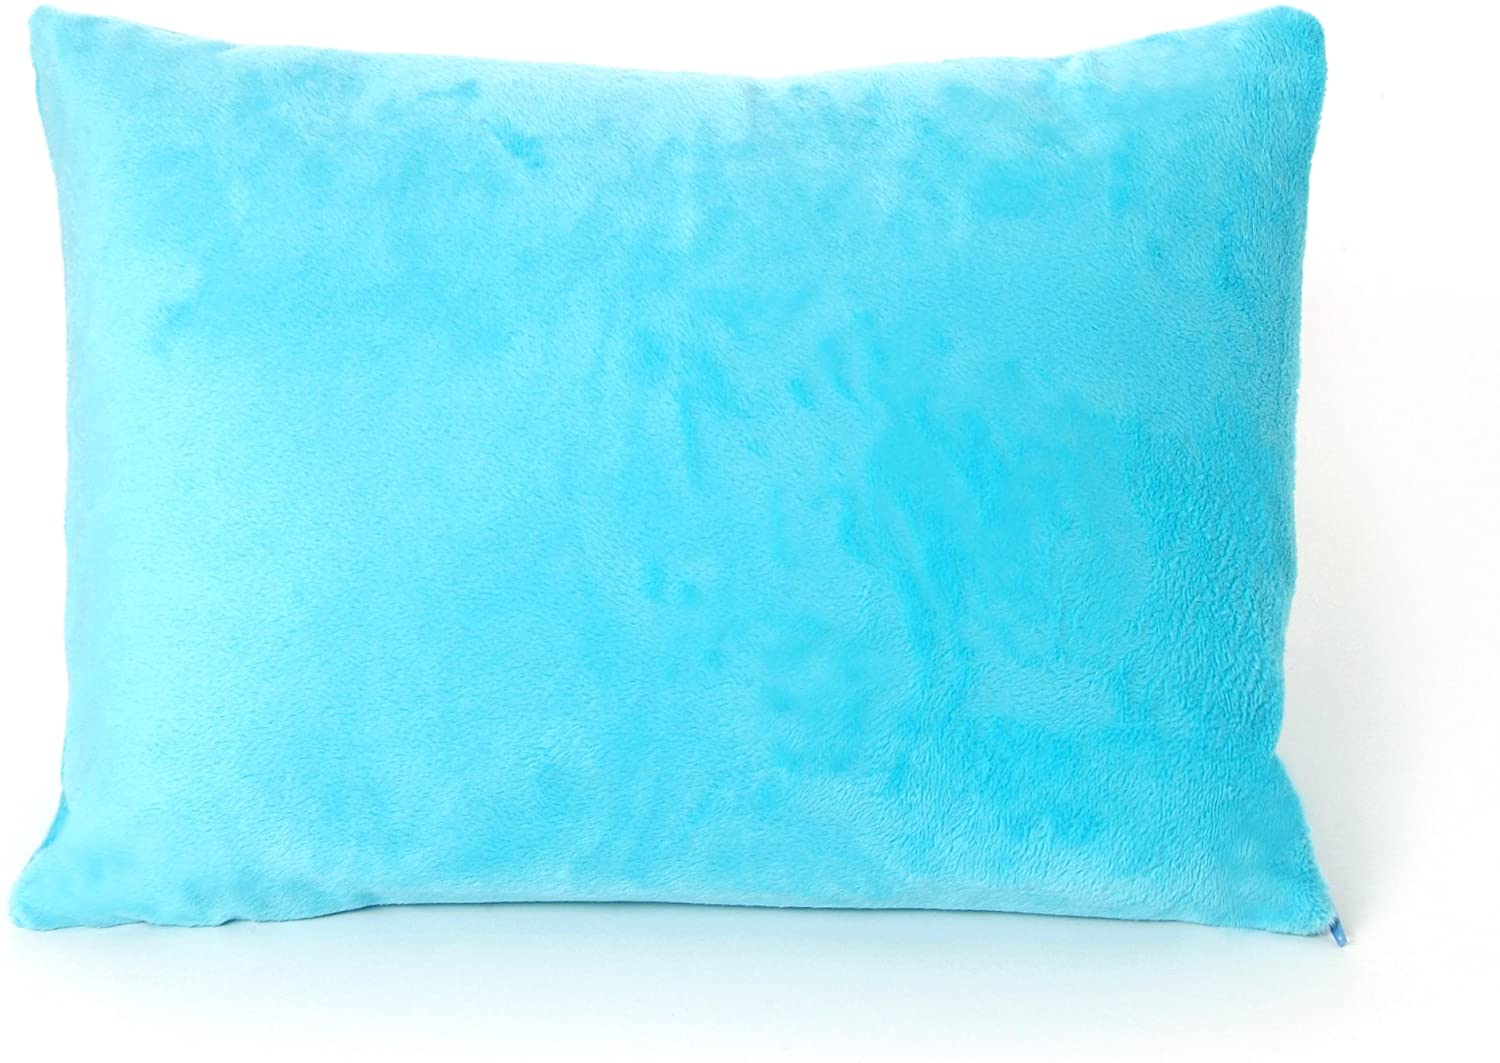 My First Premium Memory Foam Kids Toddler Pillow with Pillowcase, Blue, 12